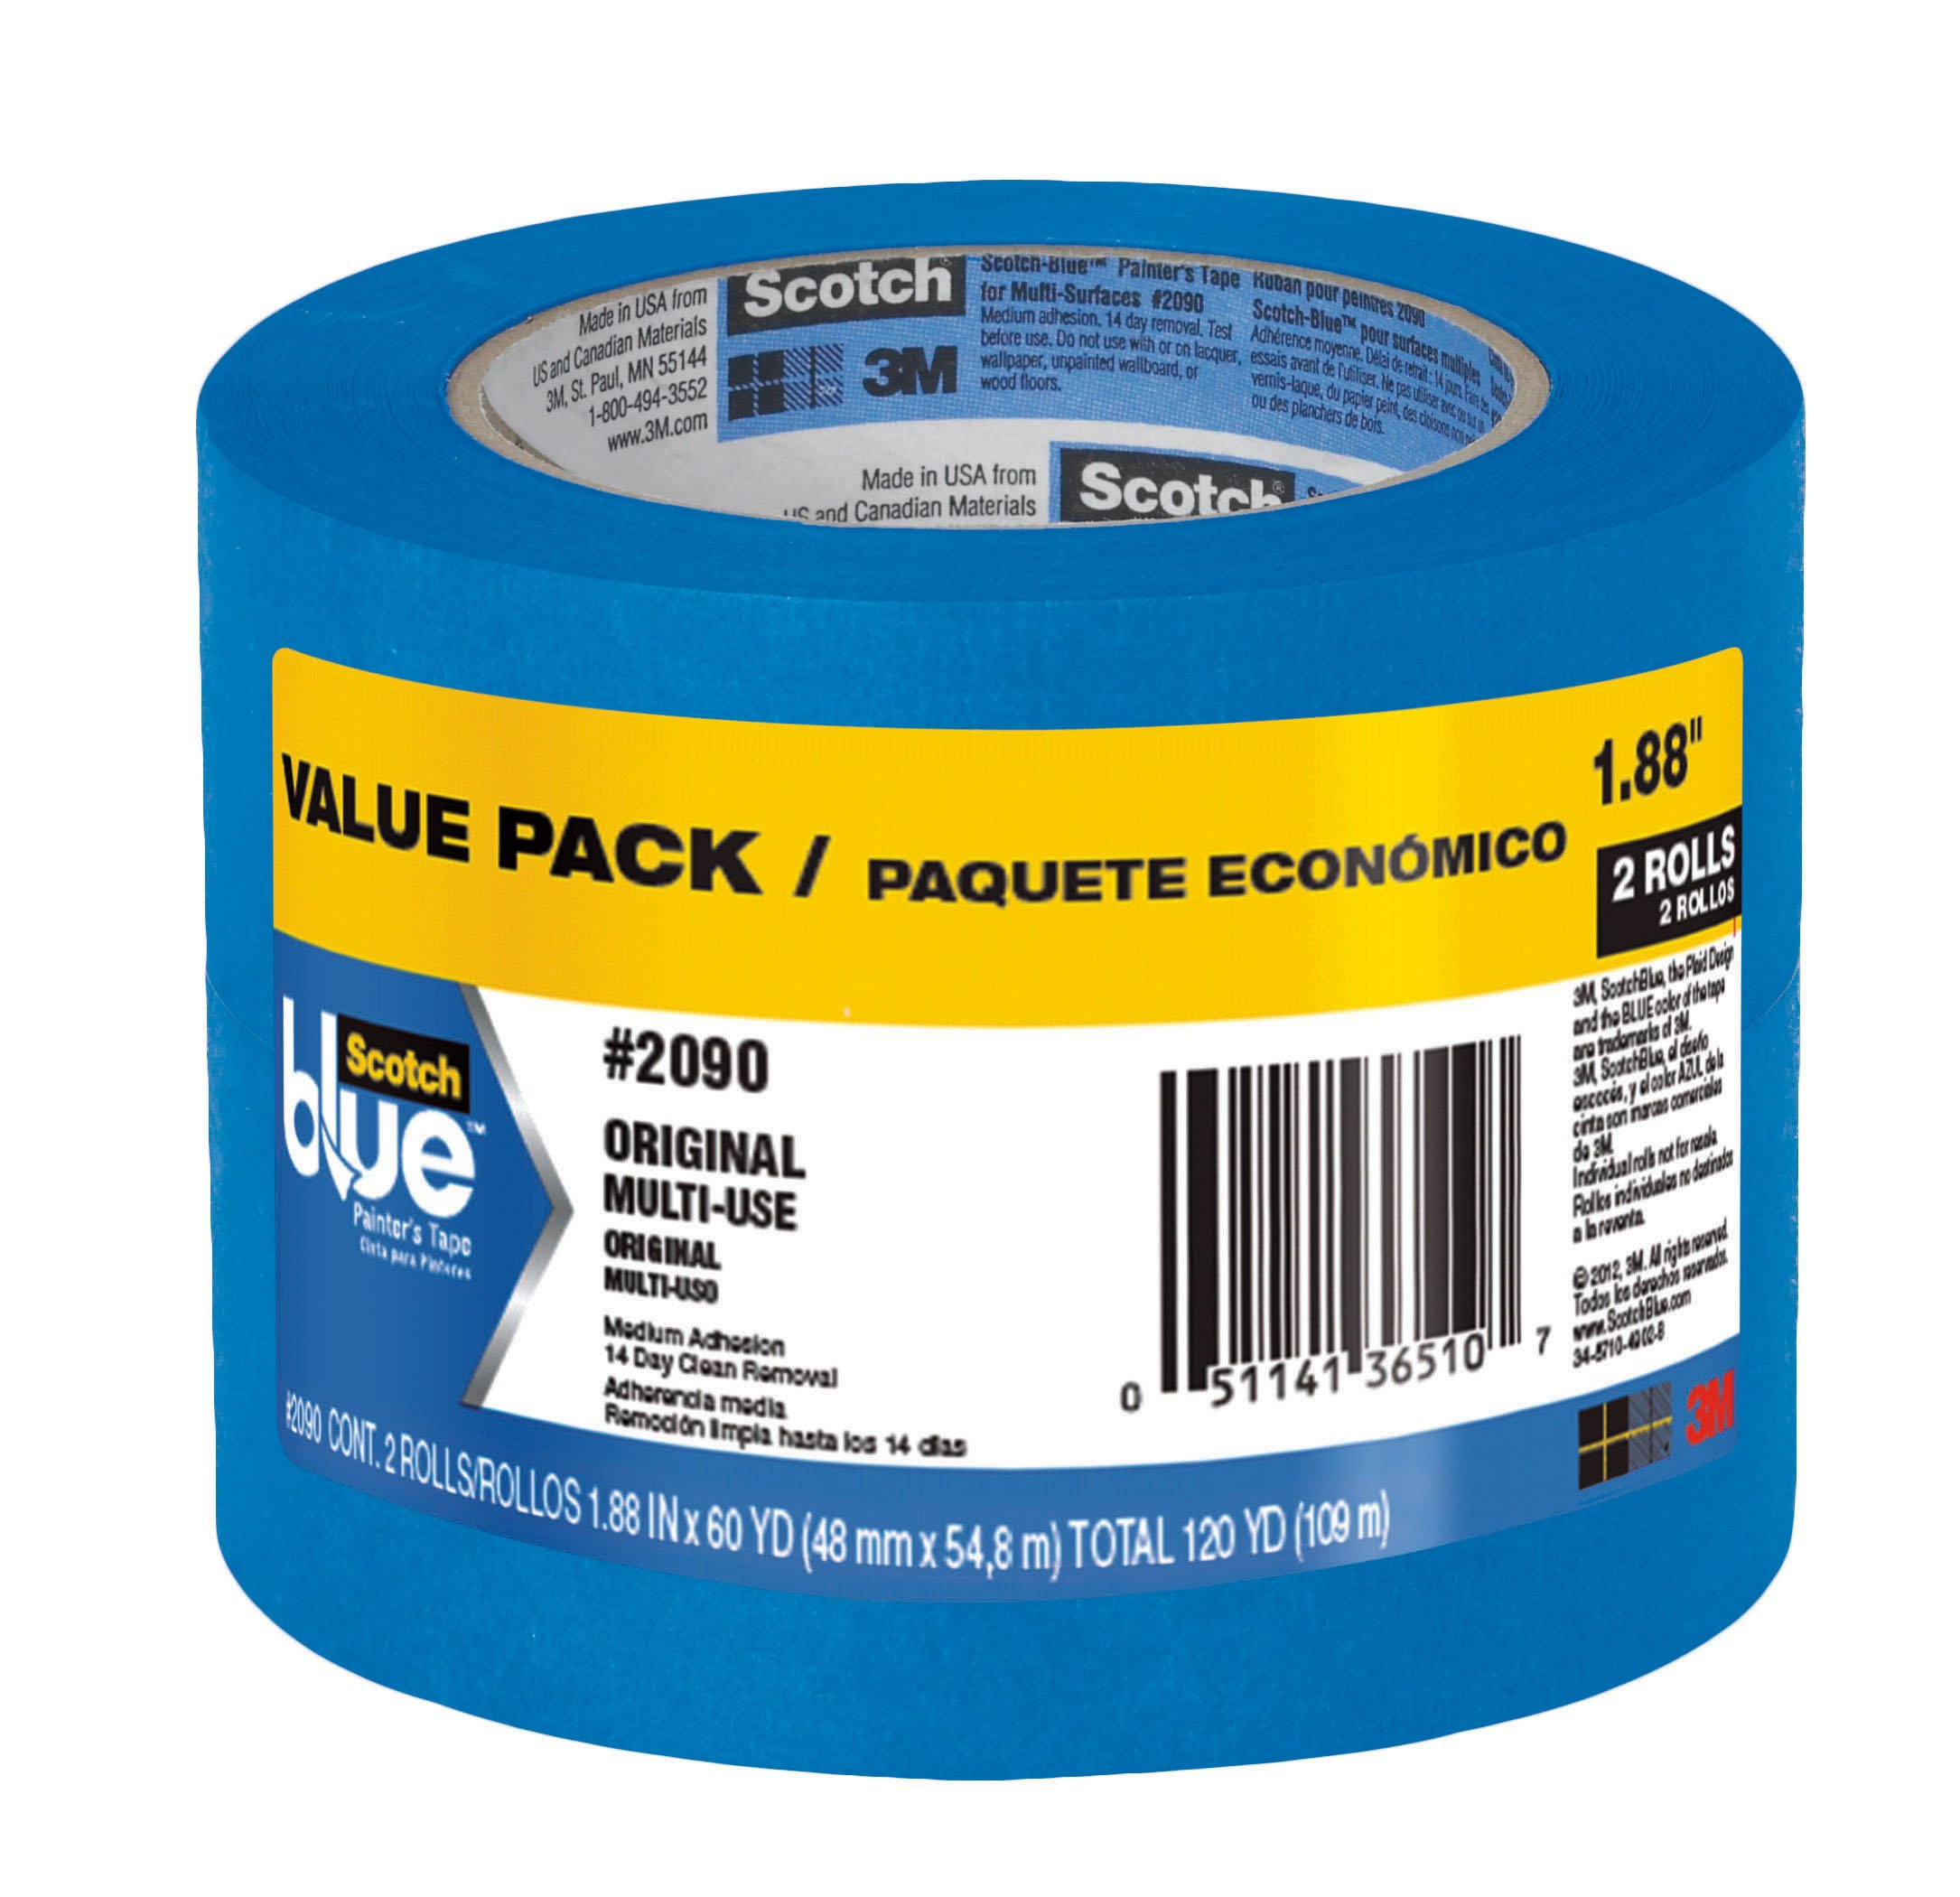 ScotchBlue Painter's Tape, Multi-Use, 1.88-Inch by 60-Yard, 2 Rolls